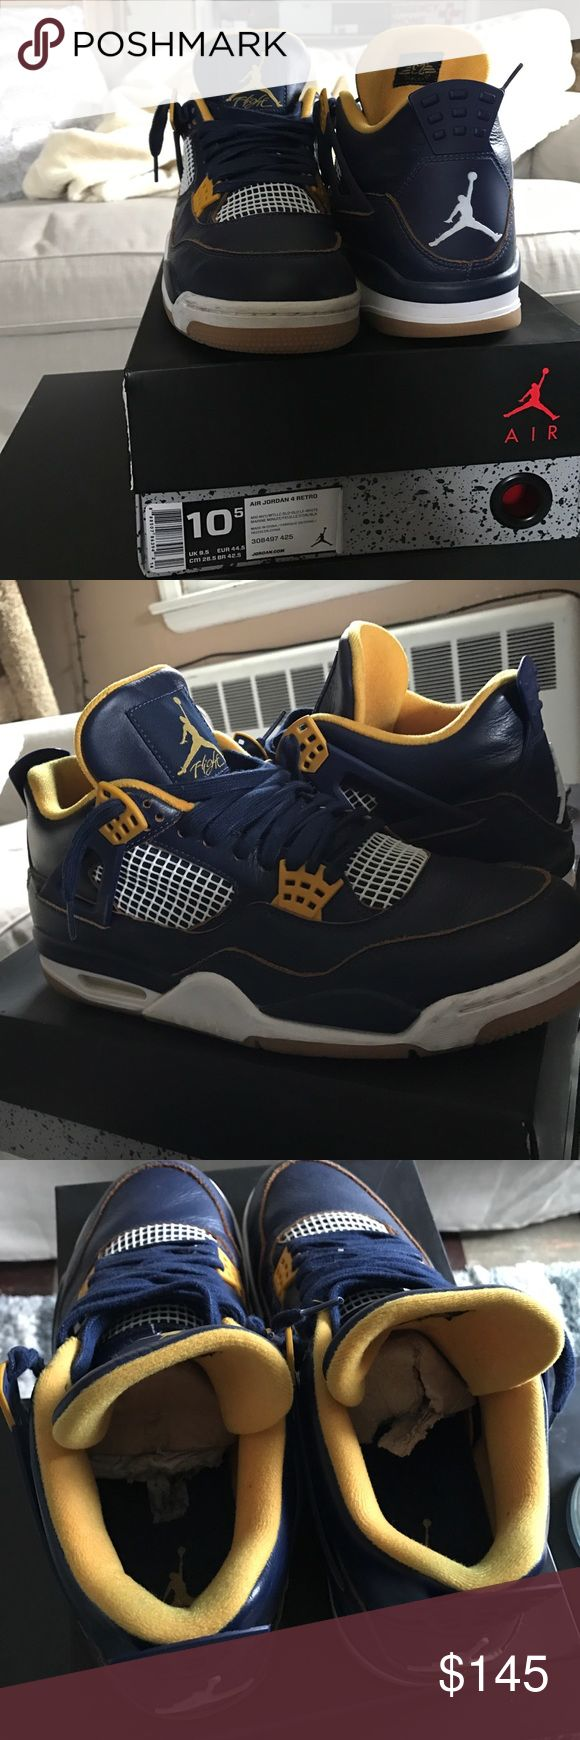 """Jordan Retro 4 """"dunk from above"""" Worn a couple times, has tiny creasing on heel and little in toe area. Comes with original box, inserts, and Jordan tag(just not shown in pic) 100% authentic. Make an Offer Jordan Shoes Sneakers"""